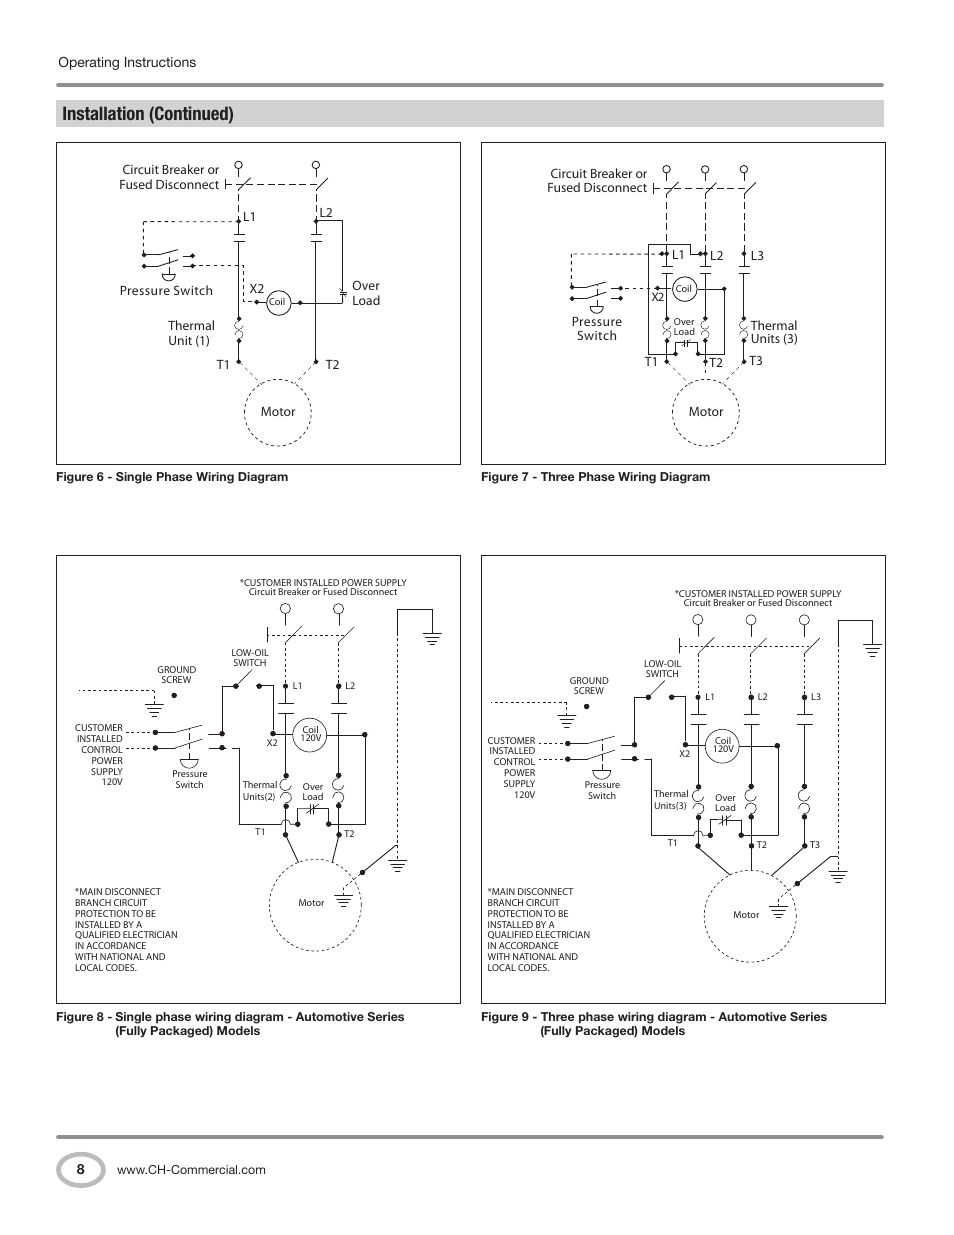 Campbell Hausfeld Wiring Diagram | Wiring Diagram on air compressor tractor, air compressor frame, vintage air diagram, air compressor types, air compressor electrical wiring, ac compressor diagram, start relay diagram, air conditioner capacitor wiring, air compressor with 220v wiring, air compressor troubleshooting, air compressor bmw, air compressor warranty, air compressor air conditioning, air compressor exploded view, air cooling diagram, air compressor radiator, air compressor adjustment, air compressor guide, air conditioner diagram, air compressor pump replacement prices,